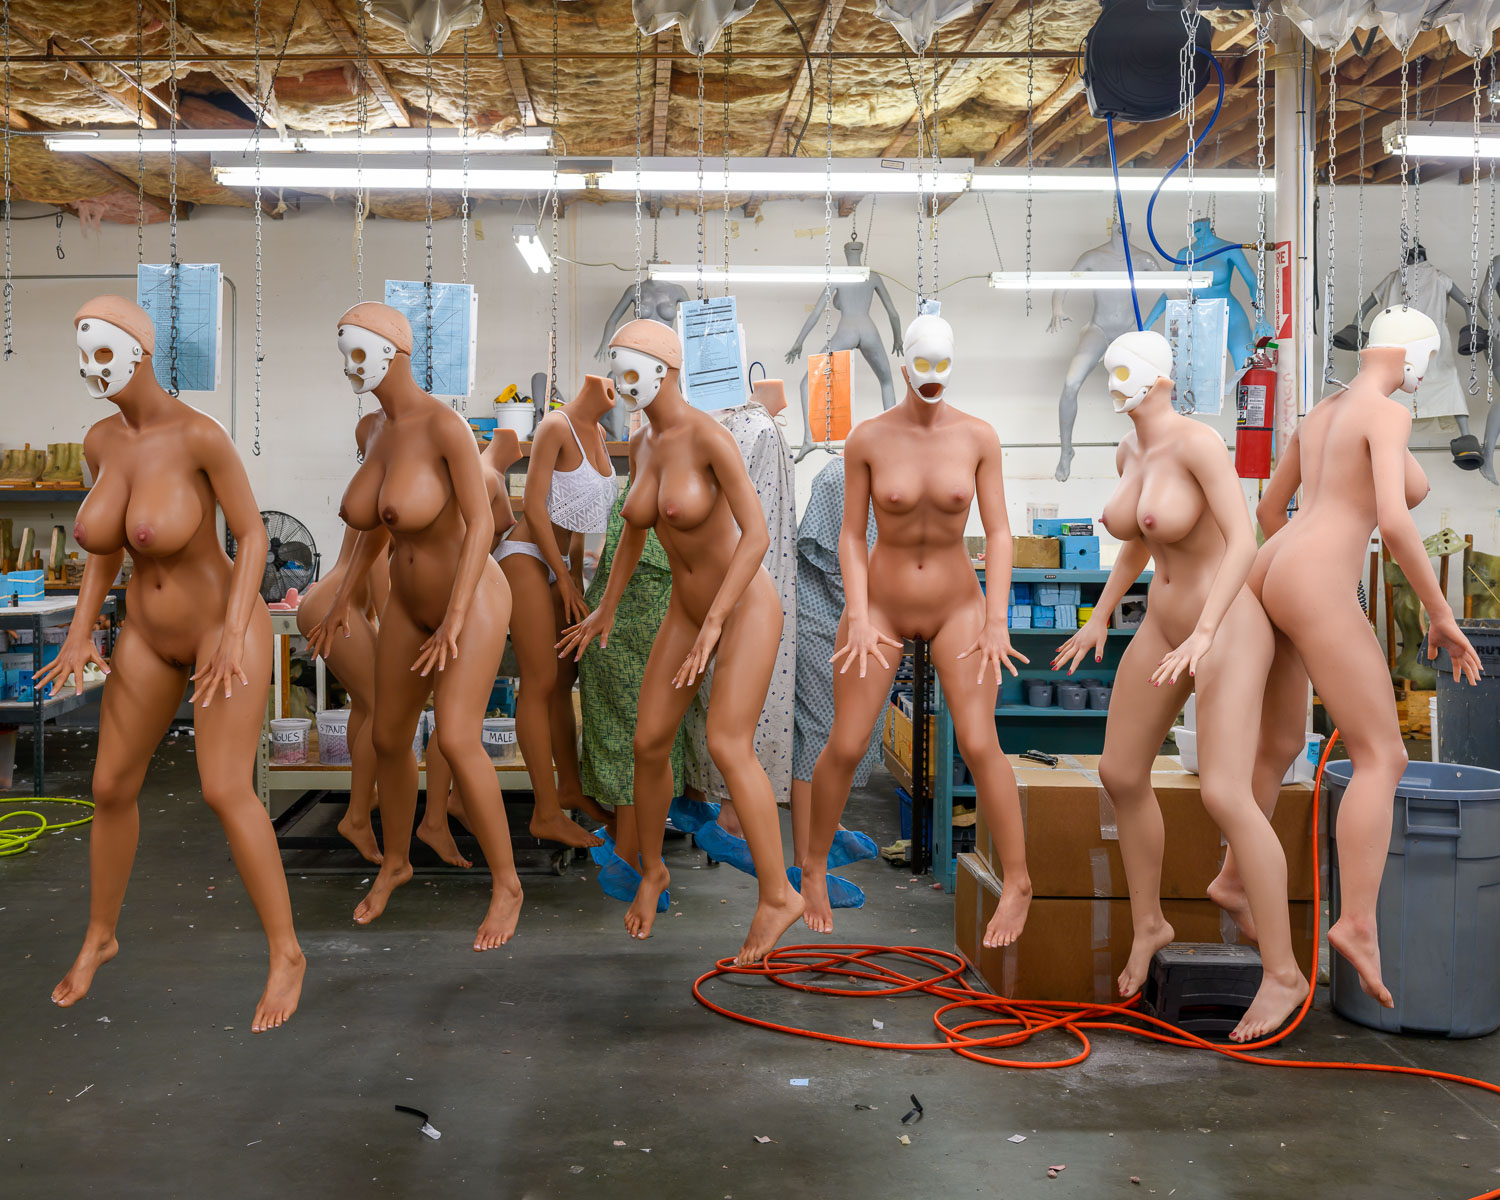 The RealDoll workshop in San Marcos, California, where 20-30 fully customisable sex dolls are made by hand every month